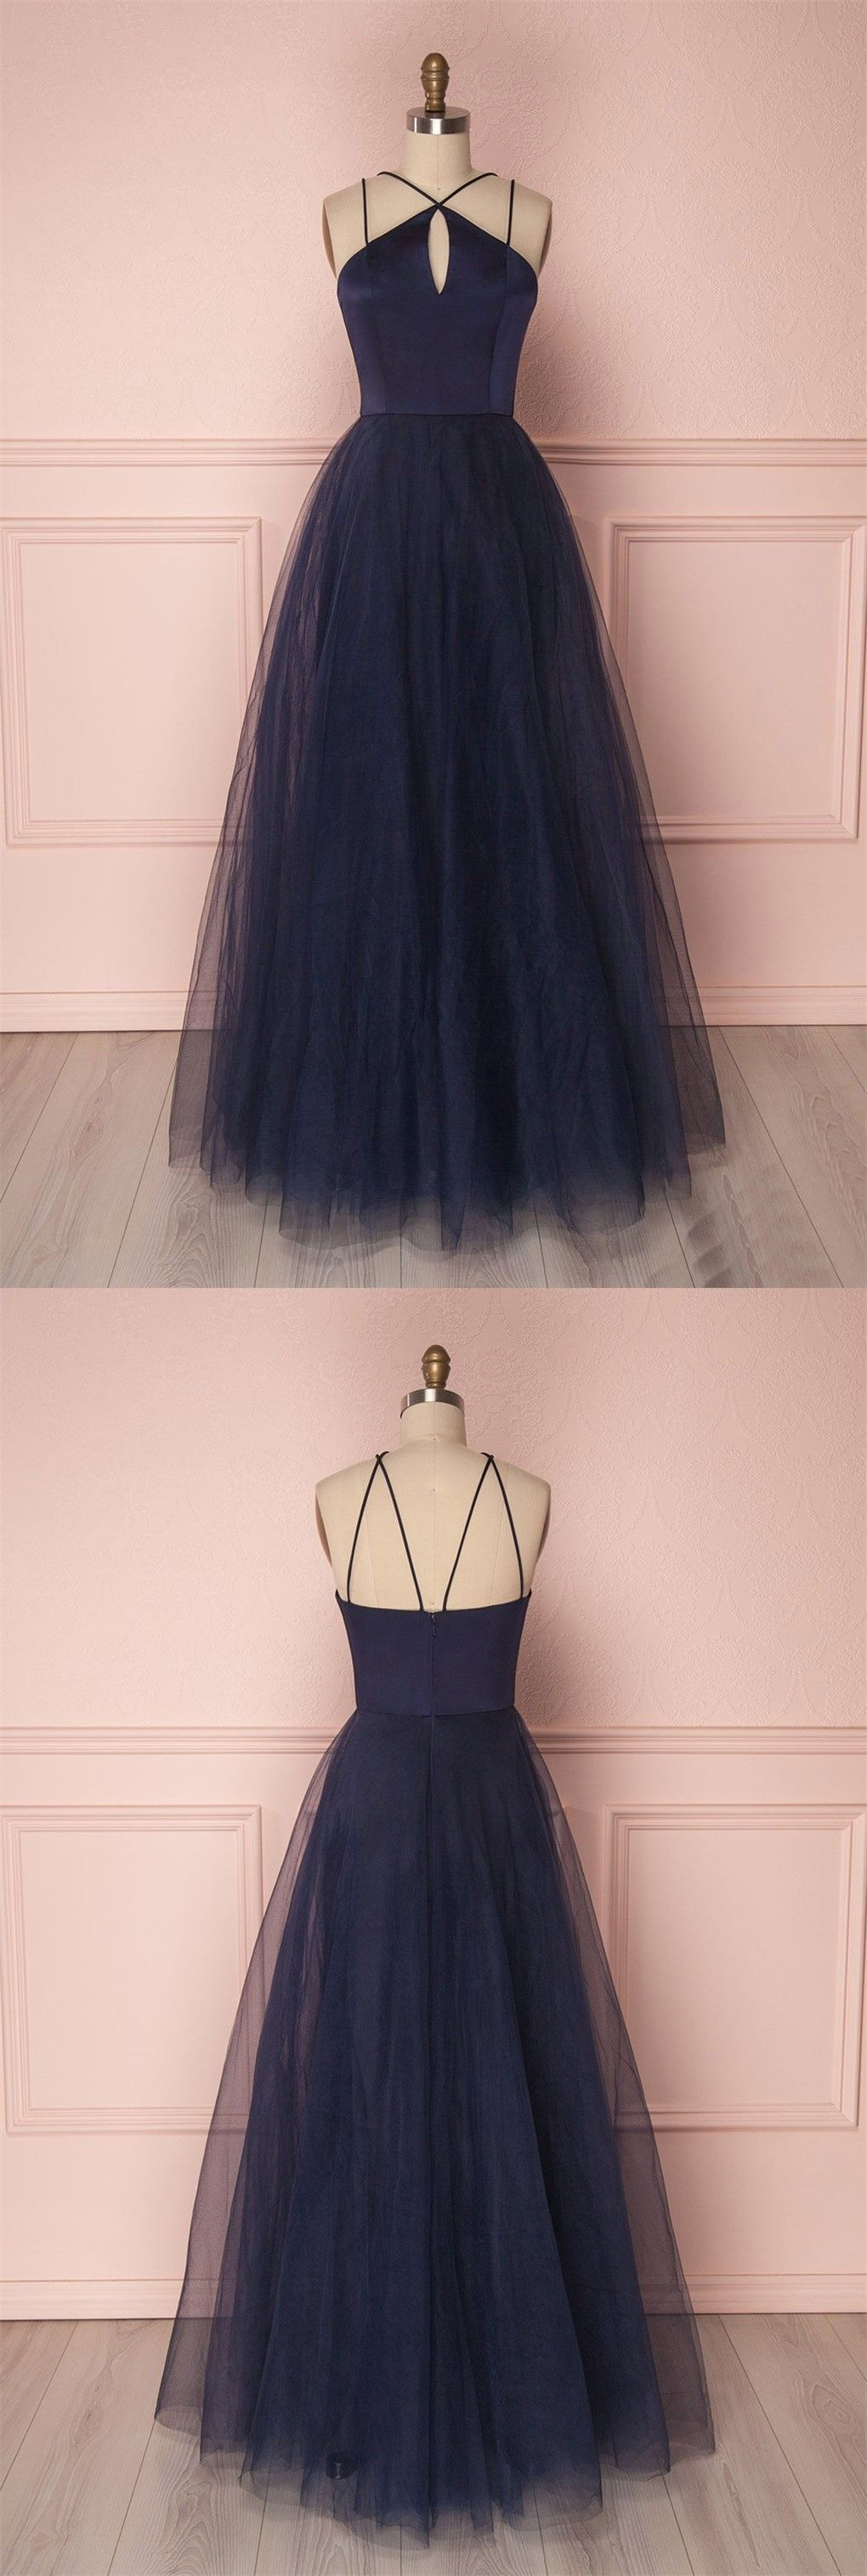 Simple dark blue long prom dress tulle evening gowns in nice